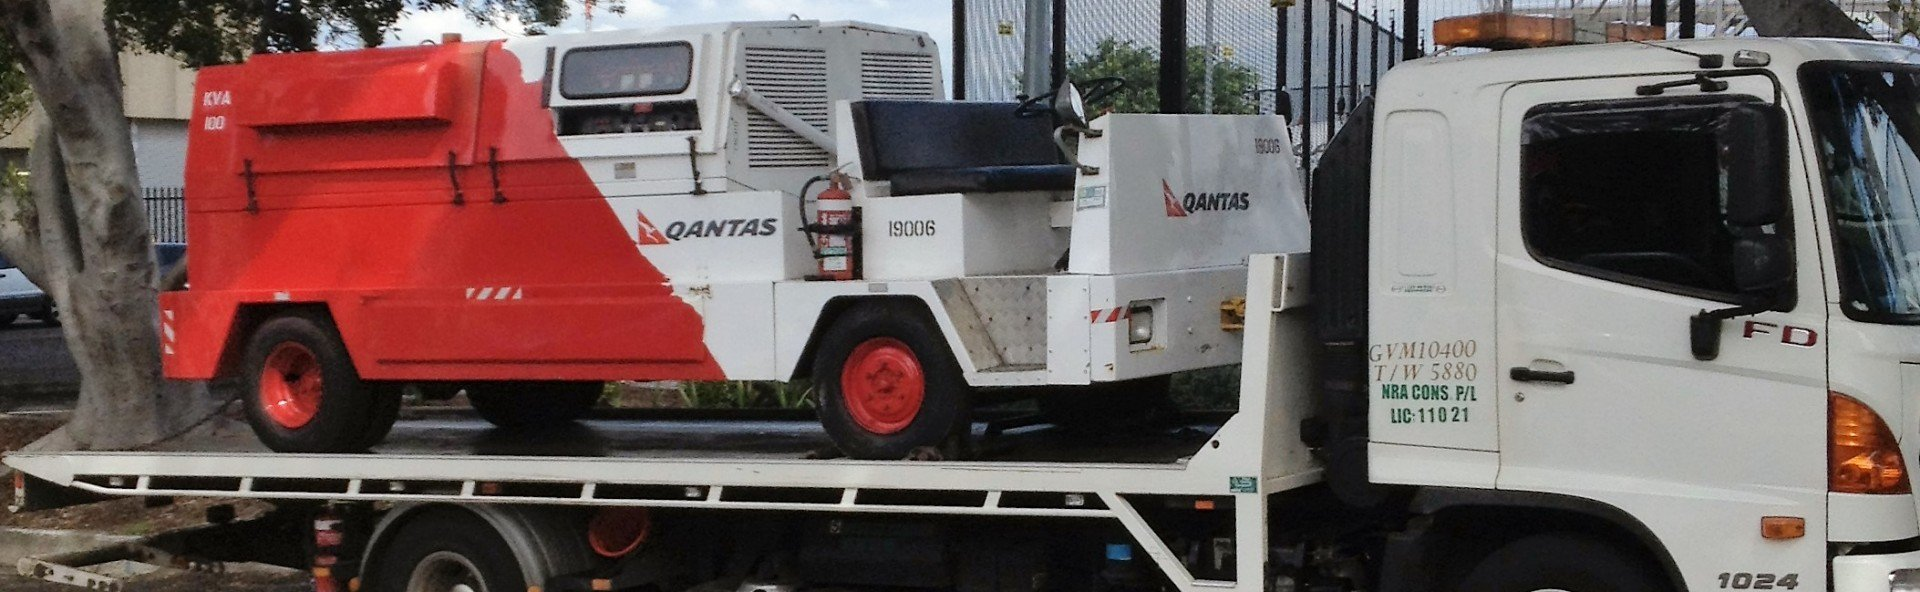 Advantages of The Selection Process For Towing Services Sydney